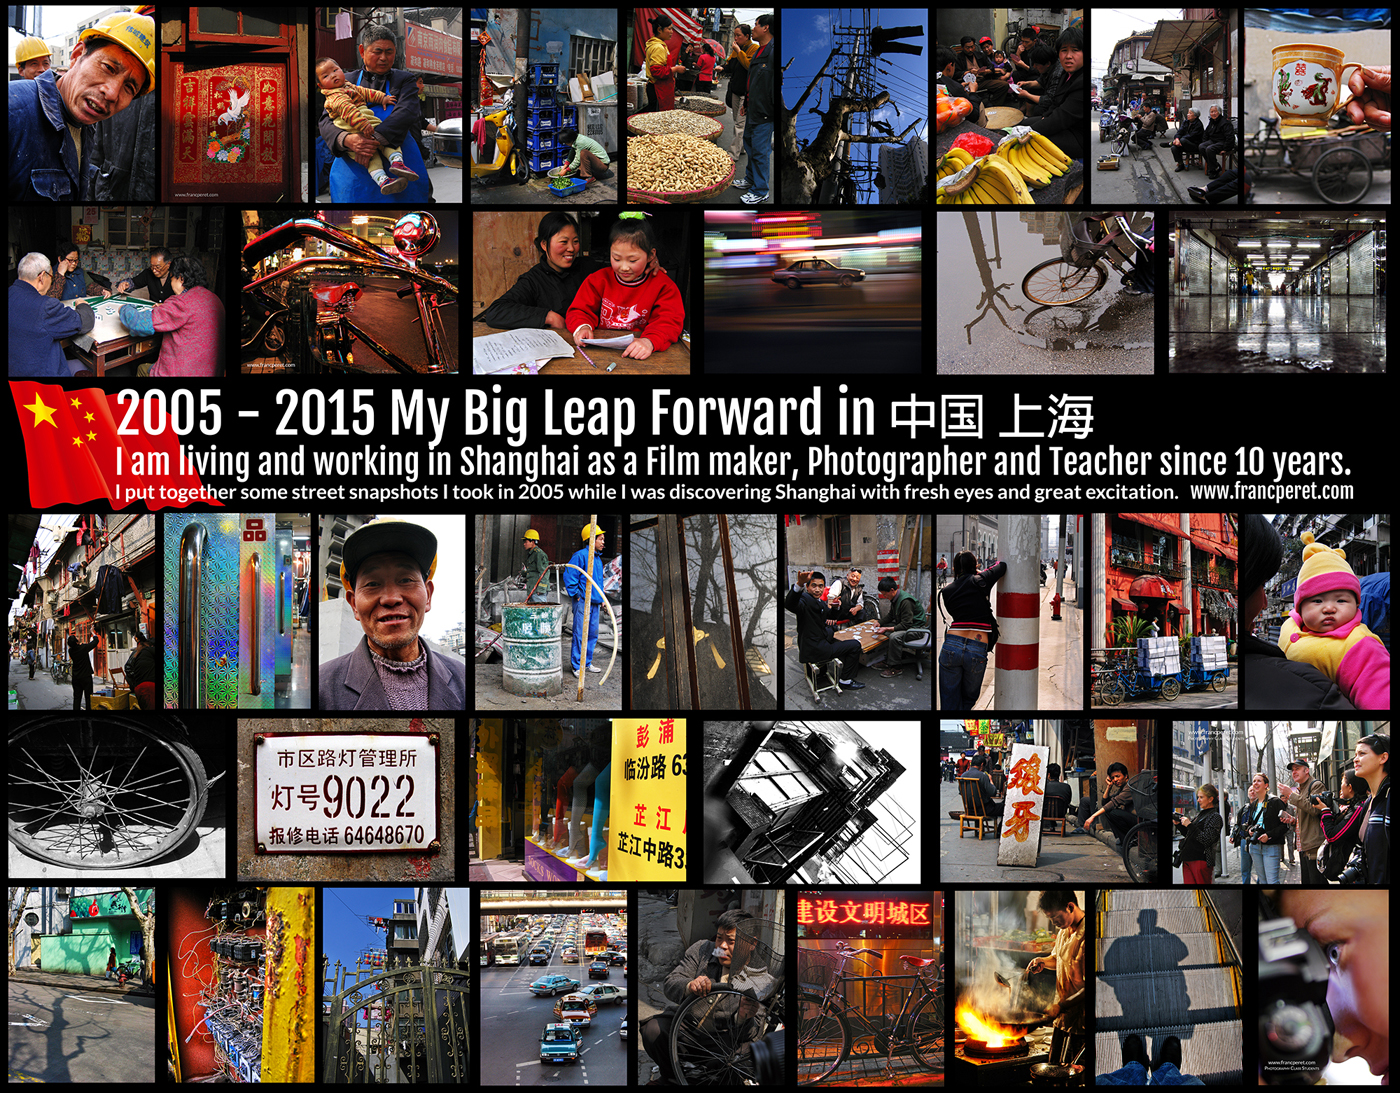 2005 to 2015, 10 years of teaching photography in Shanghai